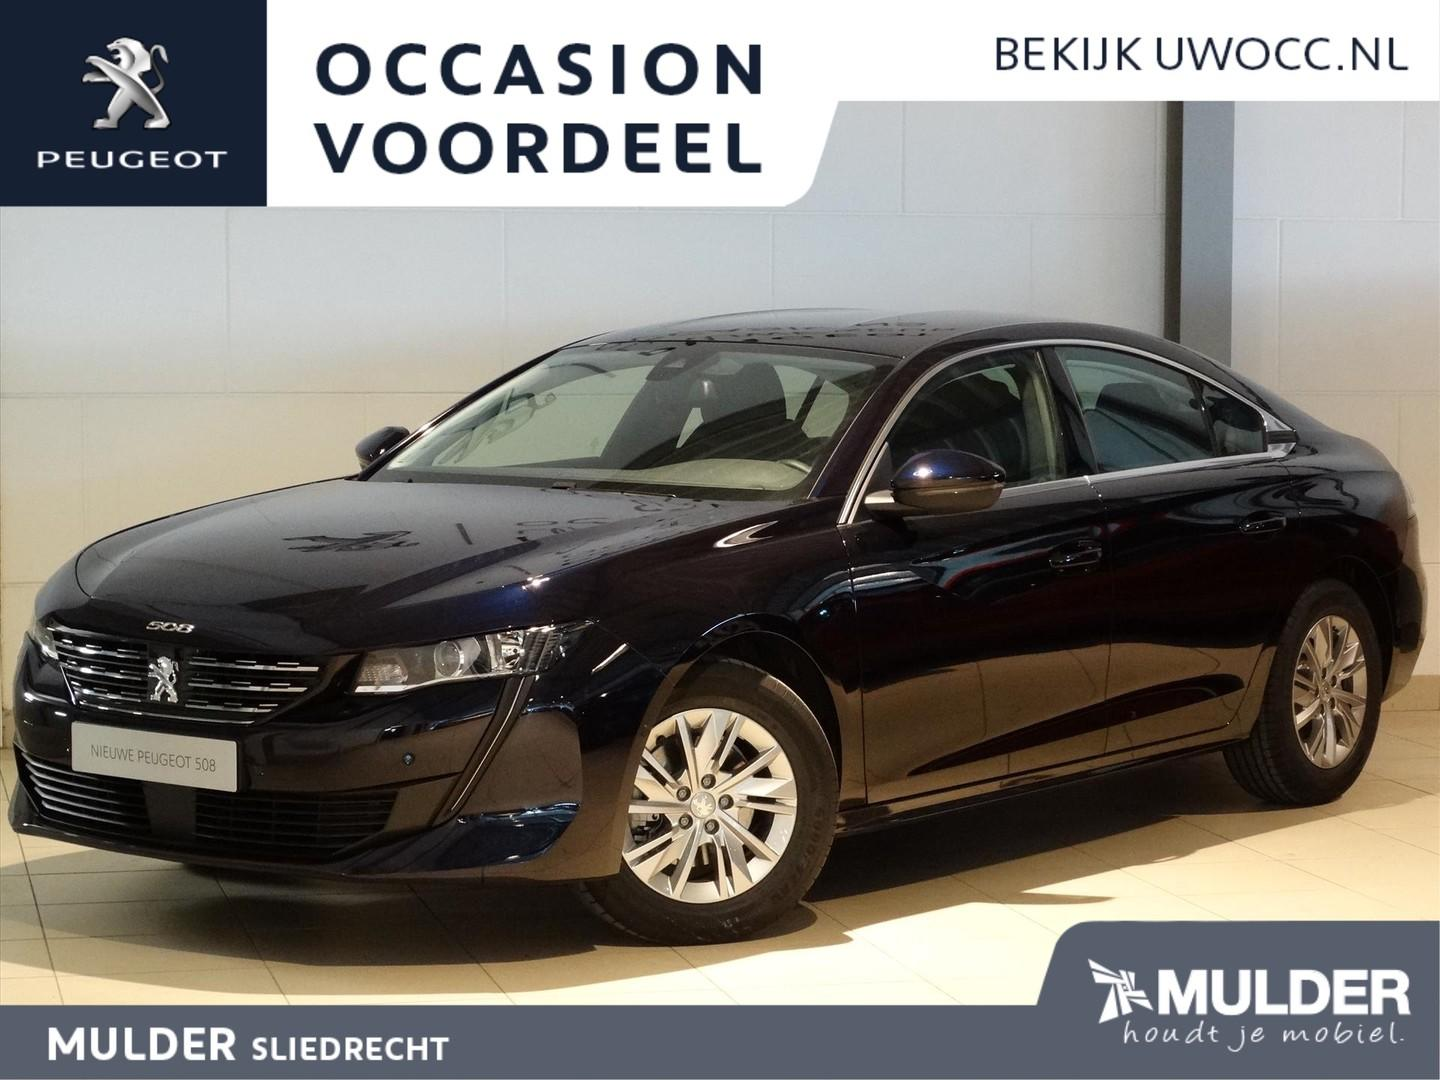 Peugeot 508 Blue lease active 1.5 bluehdi 130pk h6 navi